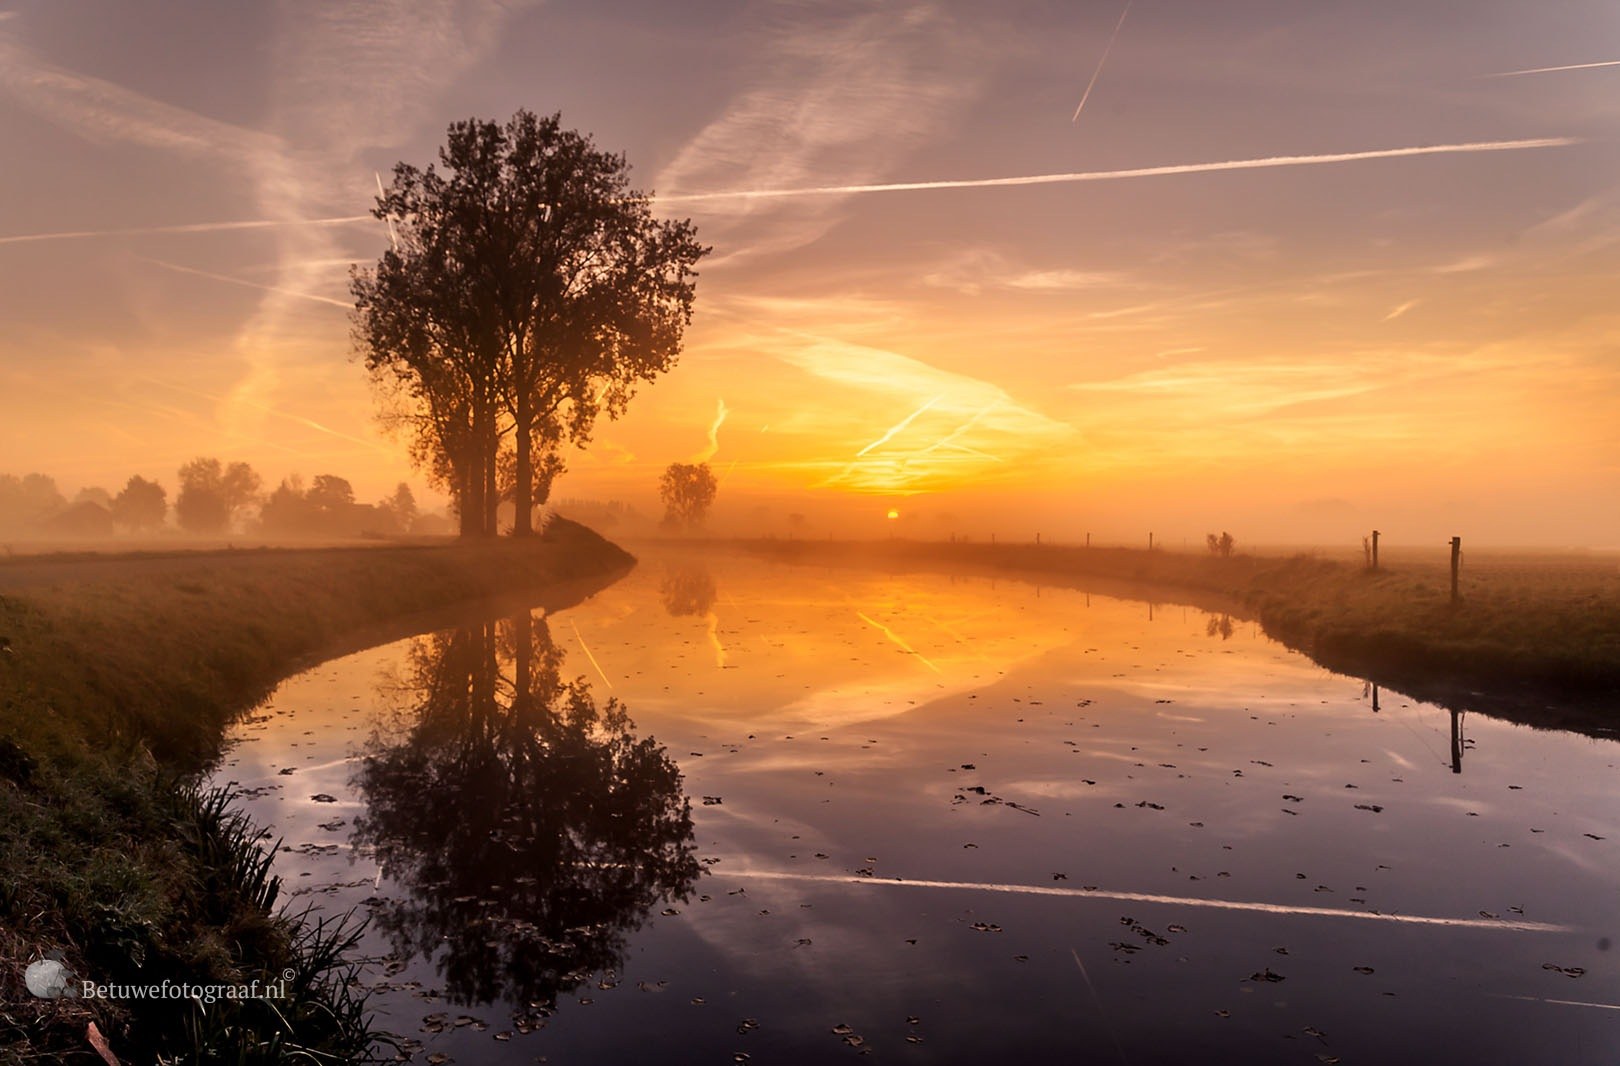 Misty Monday Morning by Betuwefotograaf